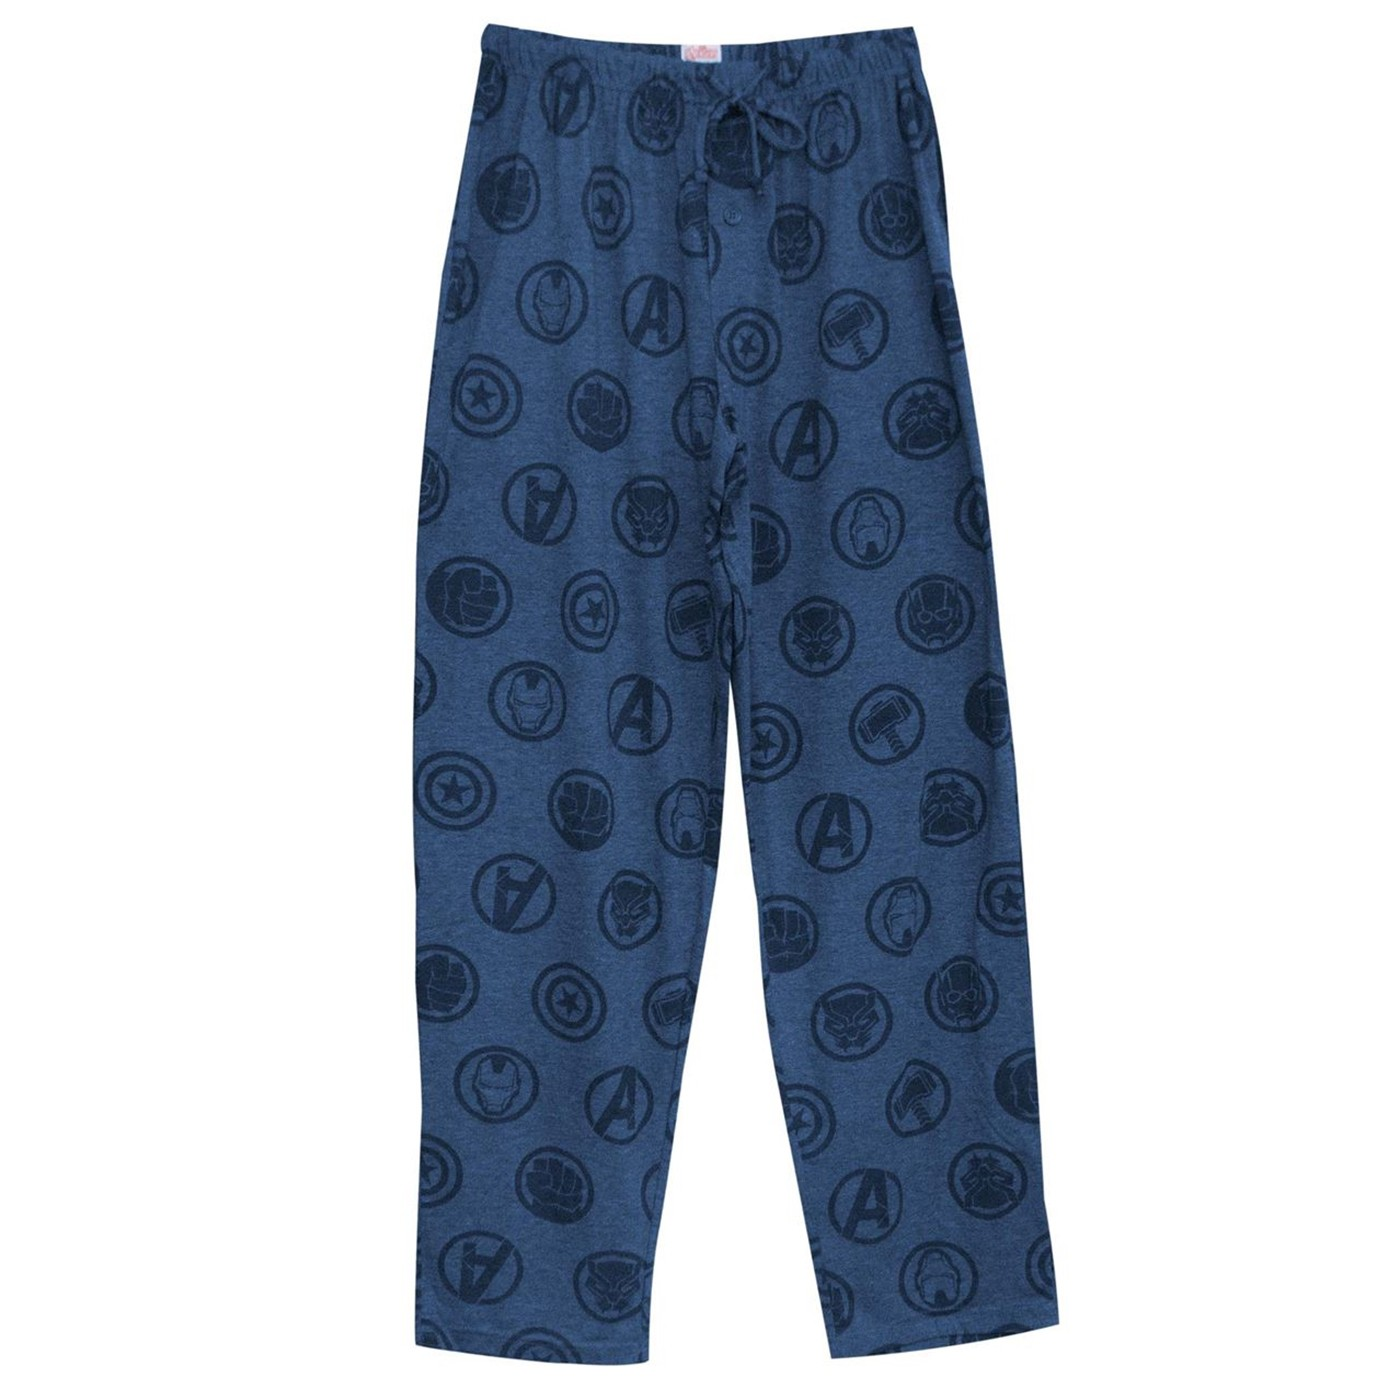 Avengers Icons Men's Pajama Pants